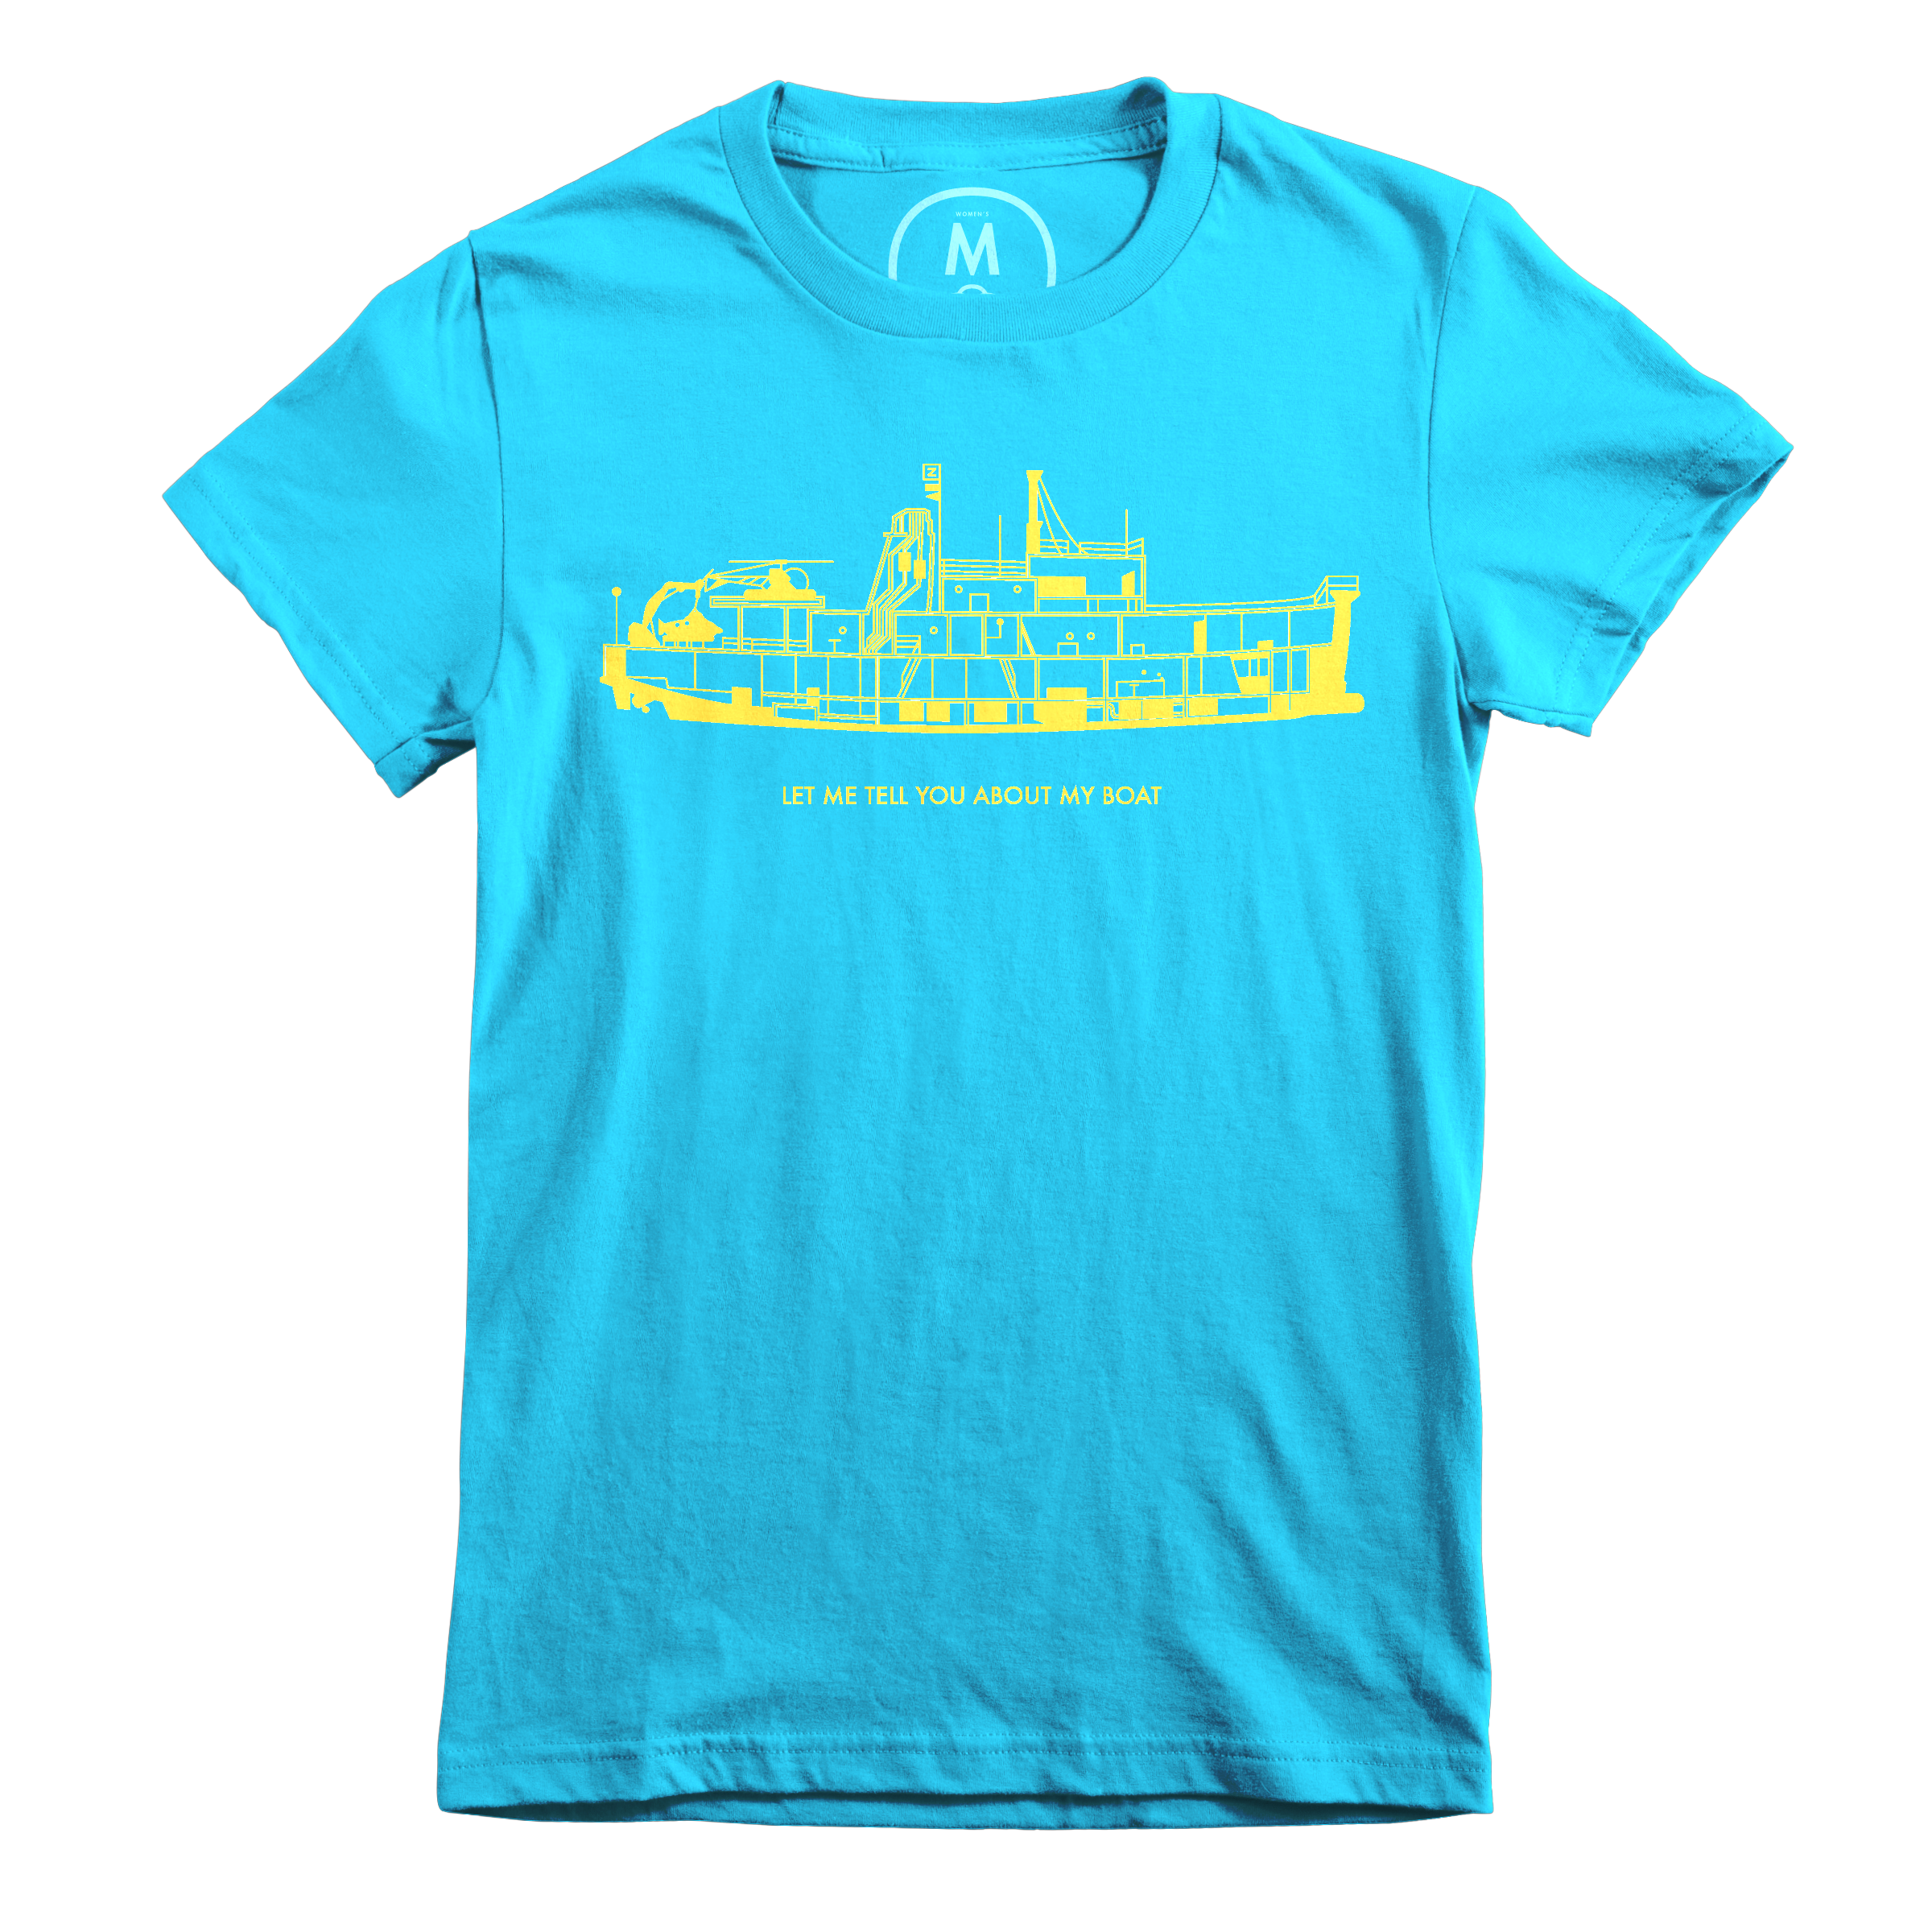 Let Me Tell You About My Boat Turquoise (Women's)